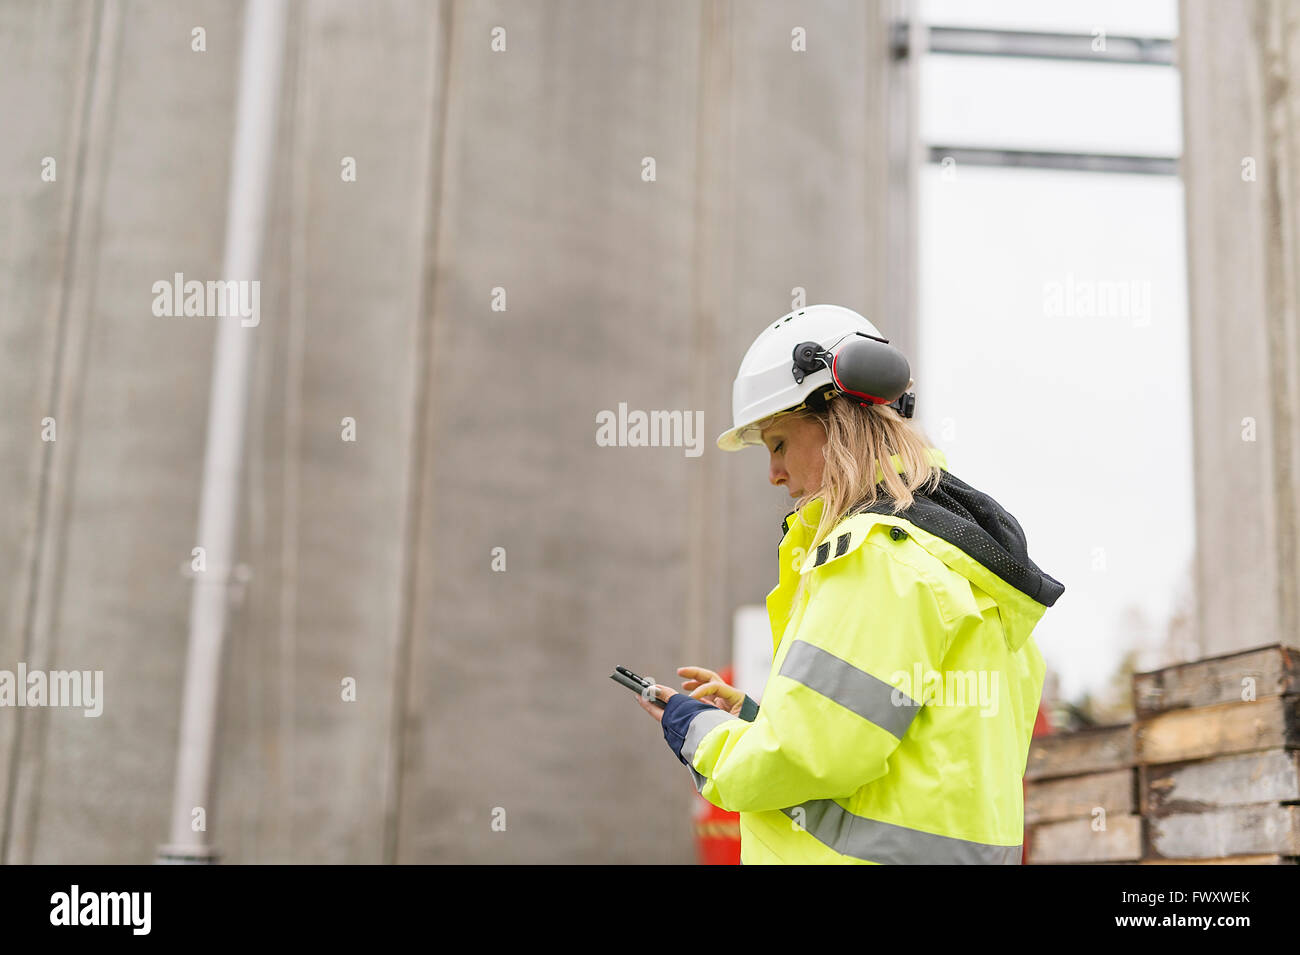 Sweden, Vastmanland, Engineer working at construction site - Stock Image